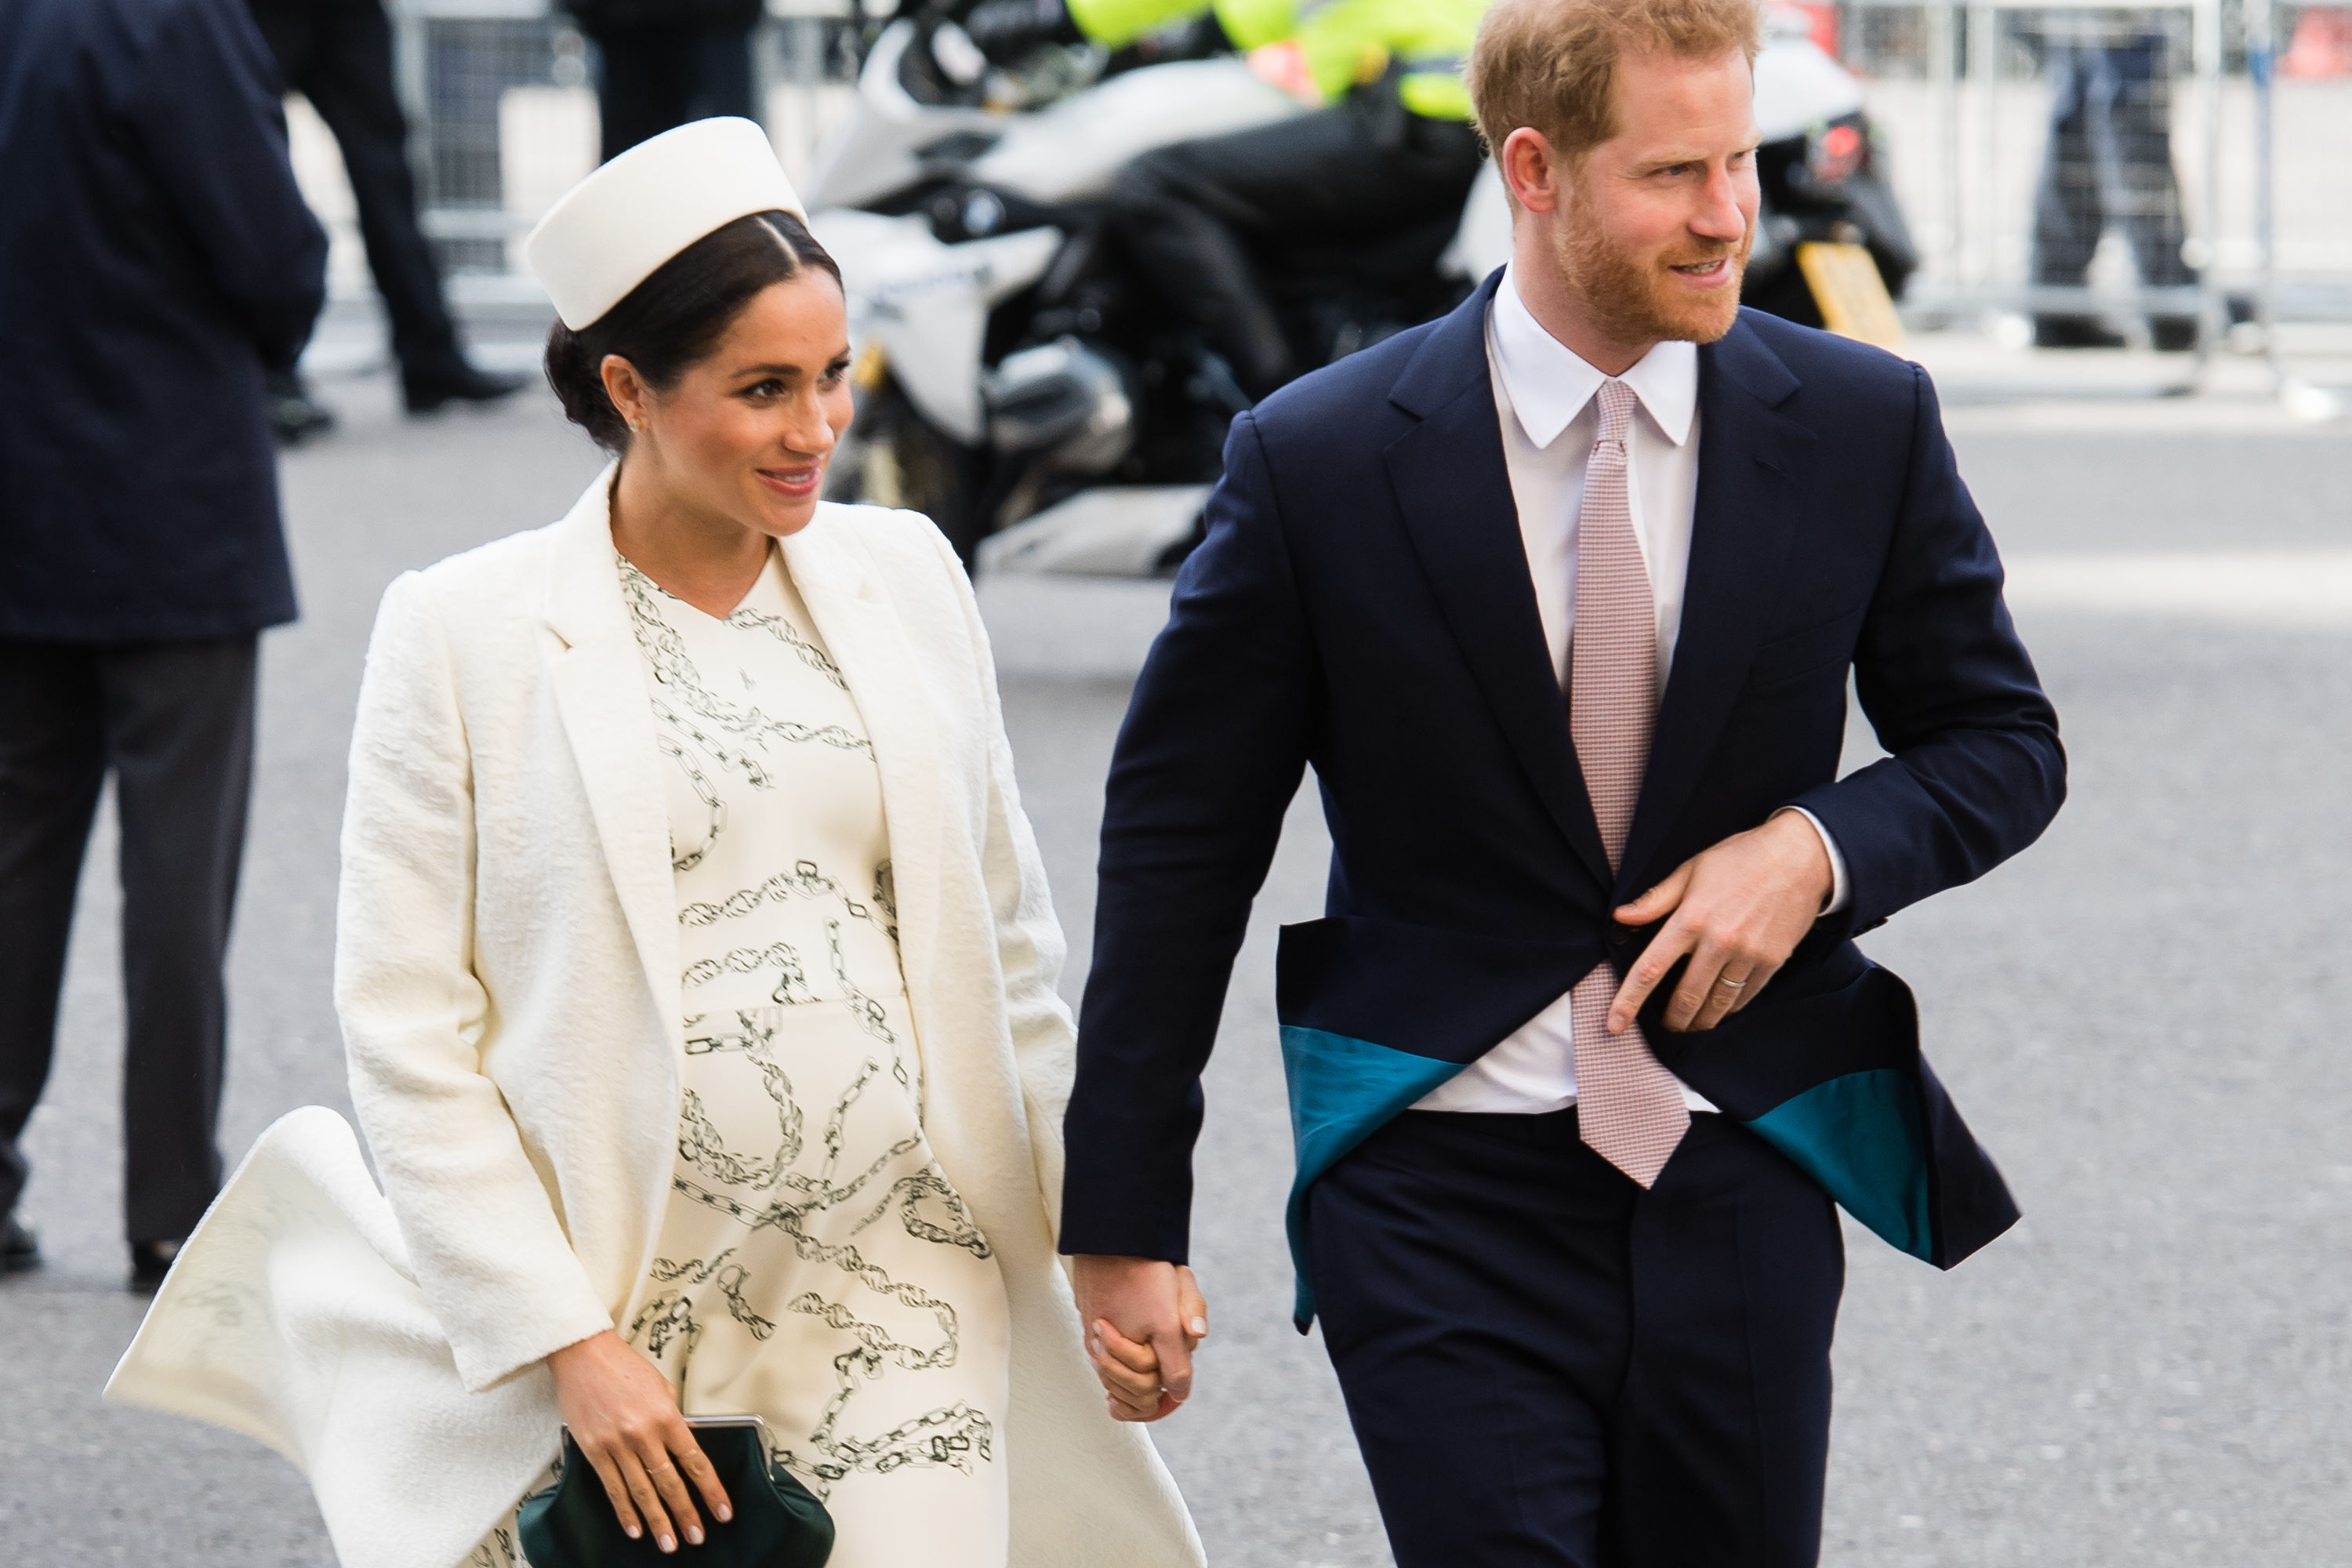 Meghan Markle is in Labor, Palace Confirms